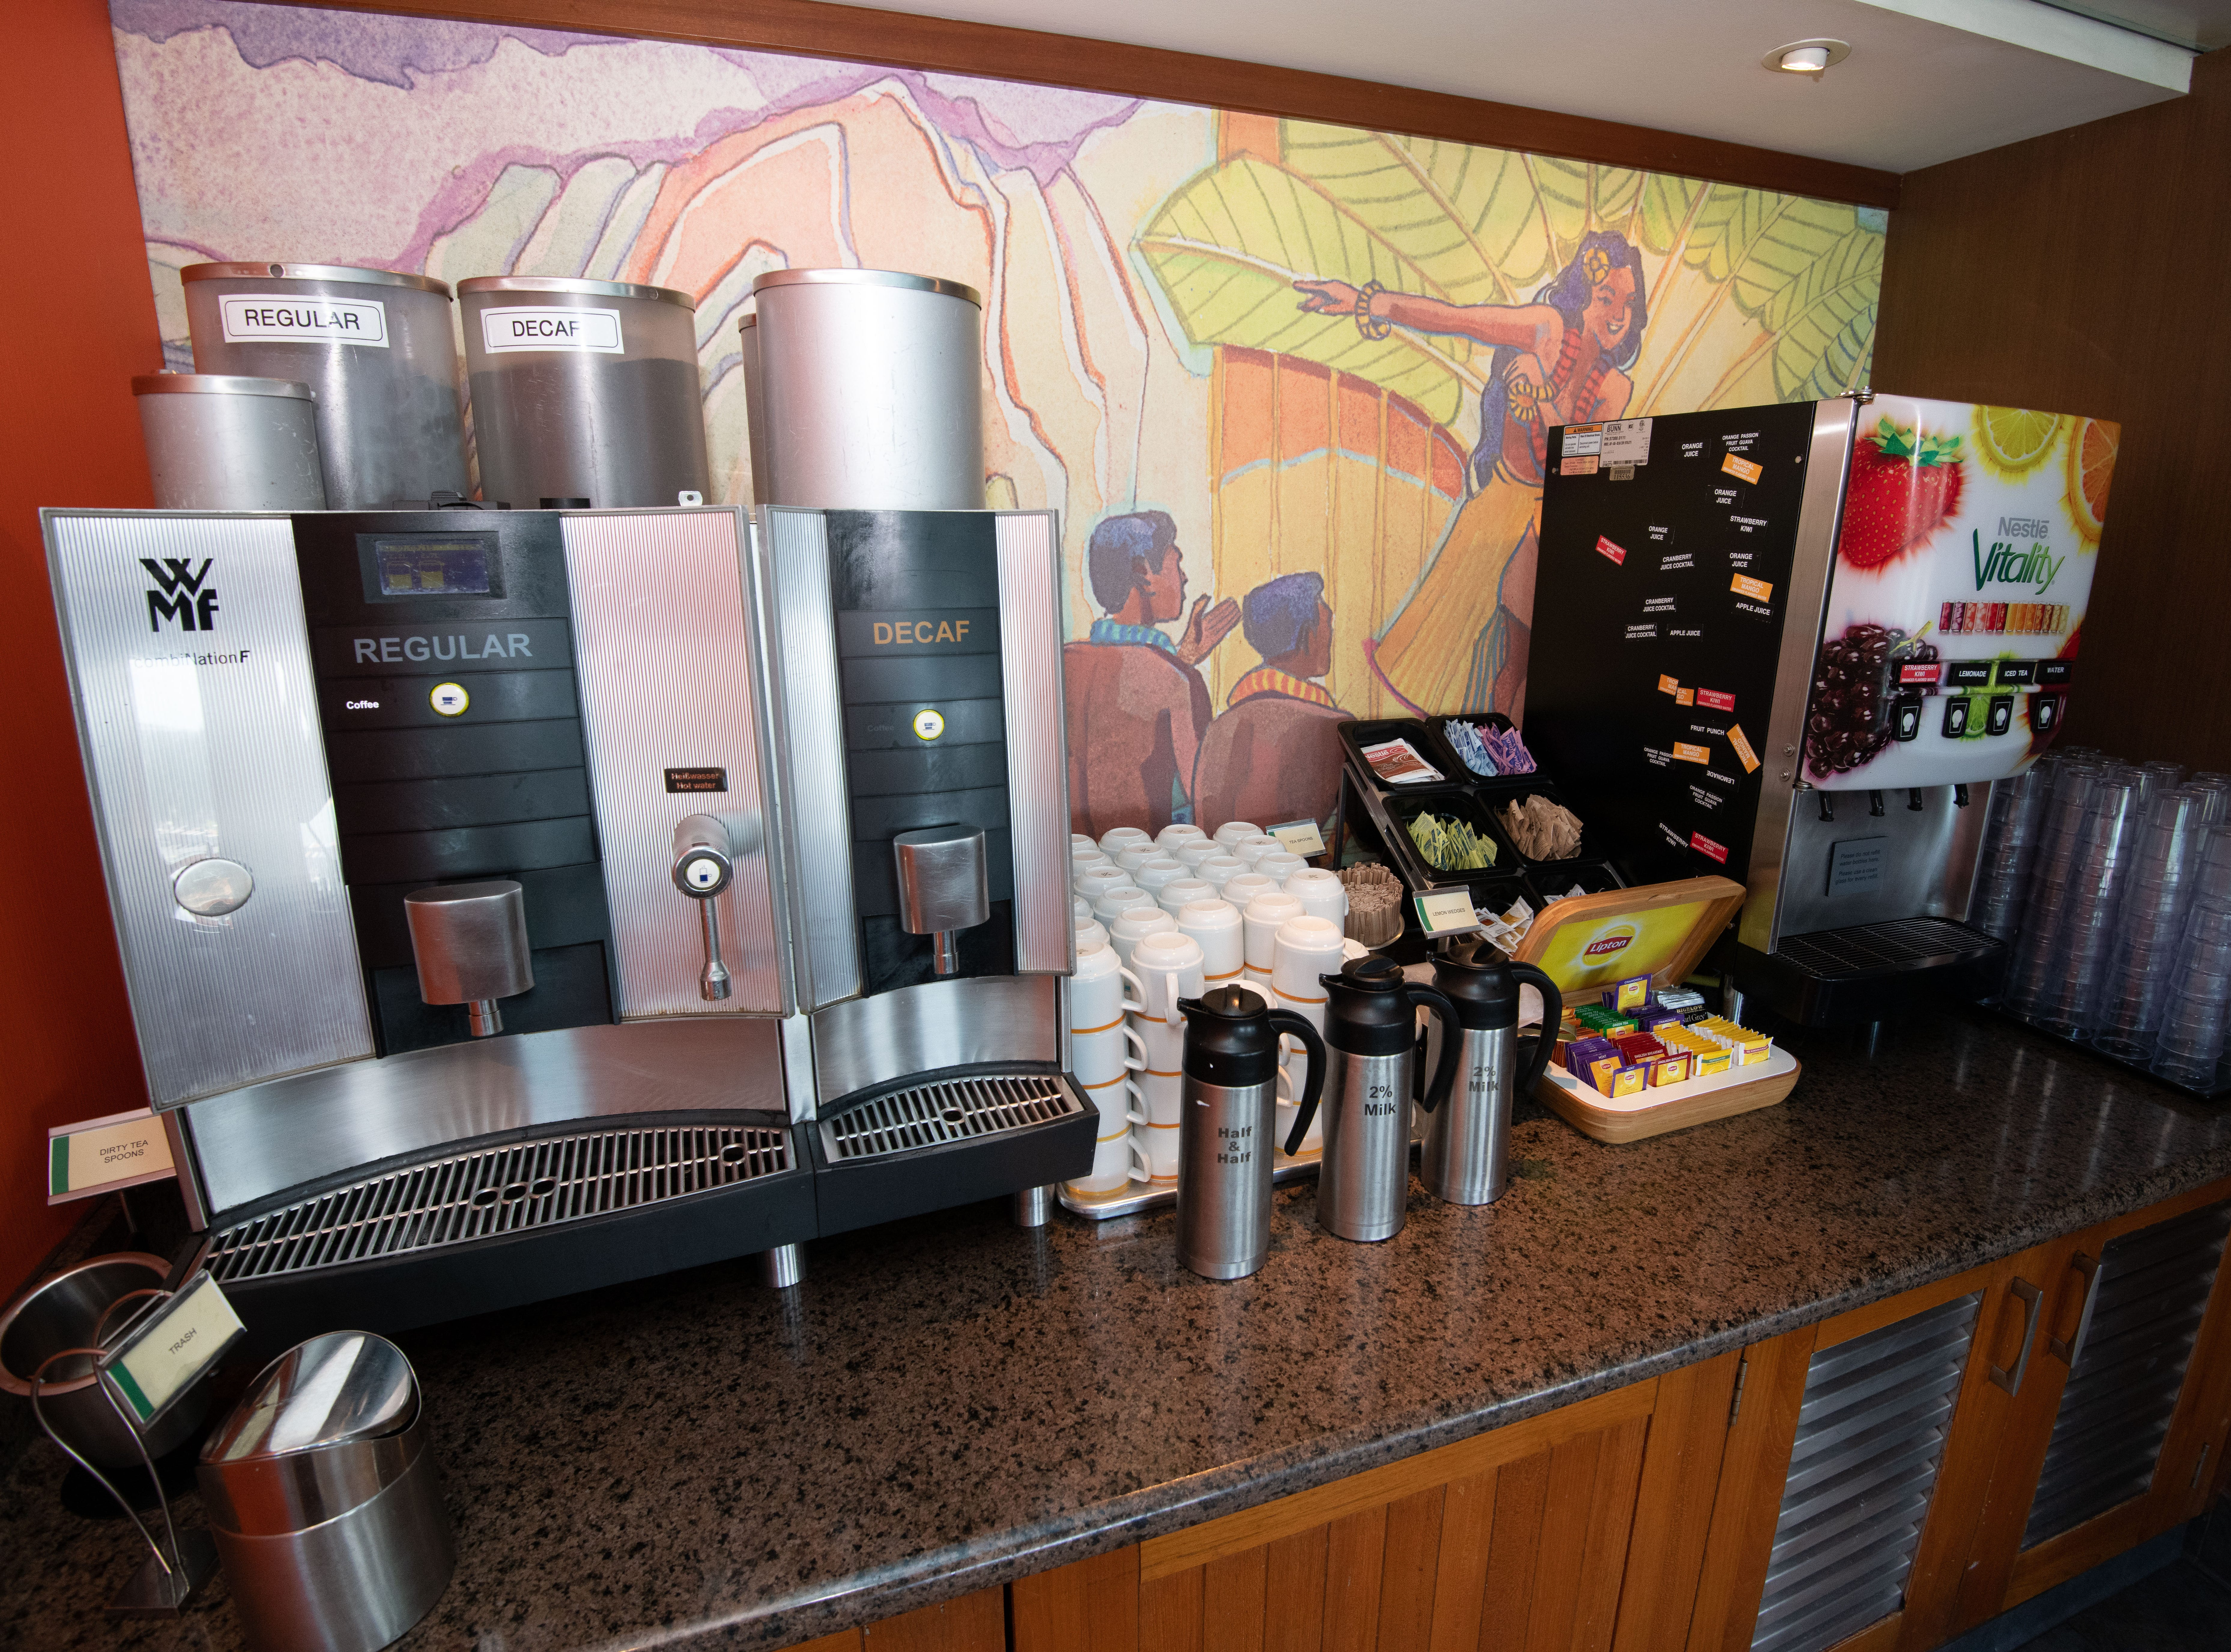 Coffee, tea and juices are available at no extra charge in the Aloha Cafe.